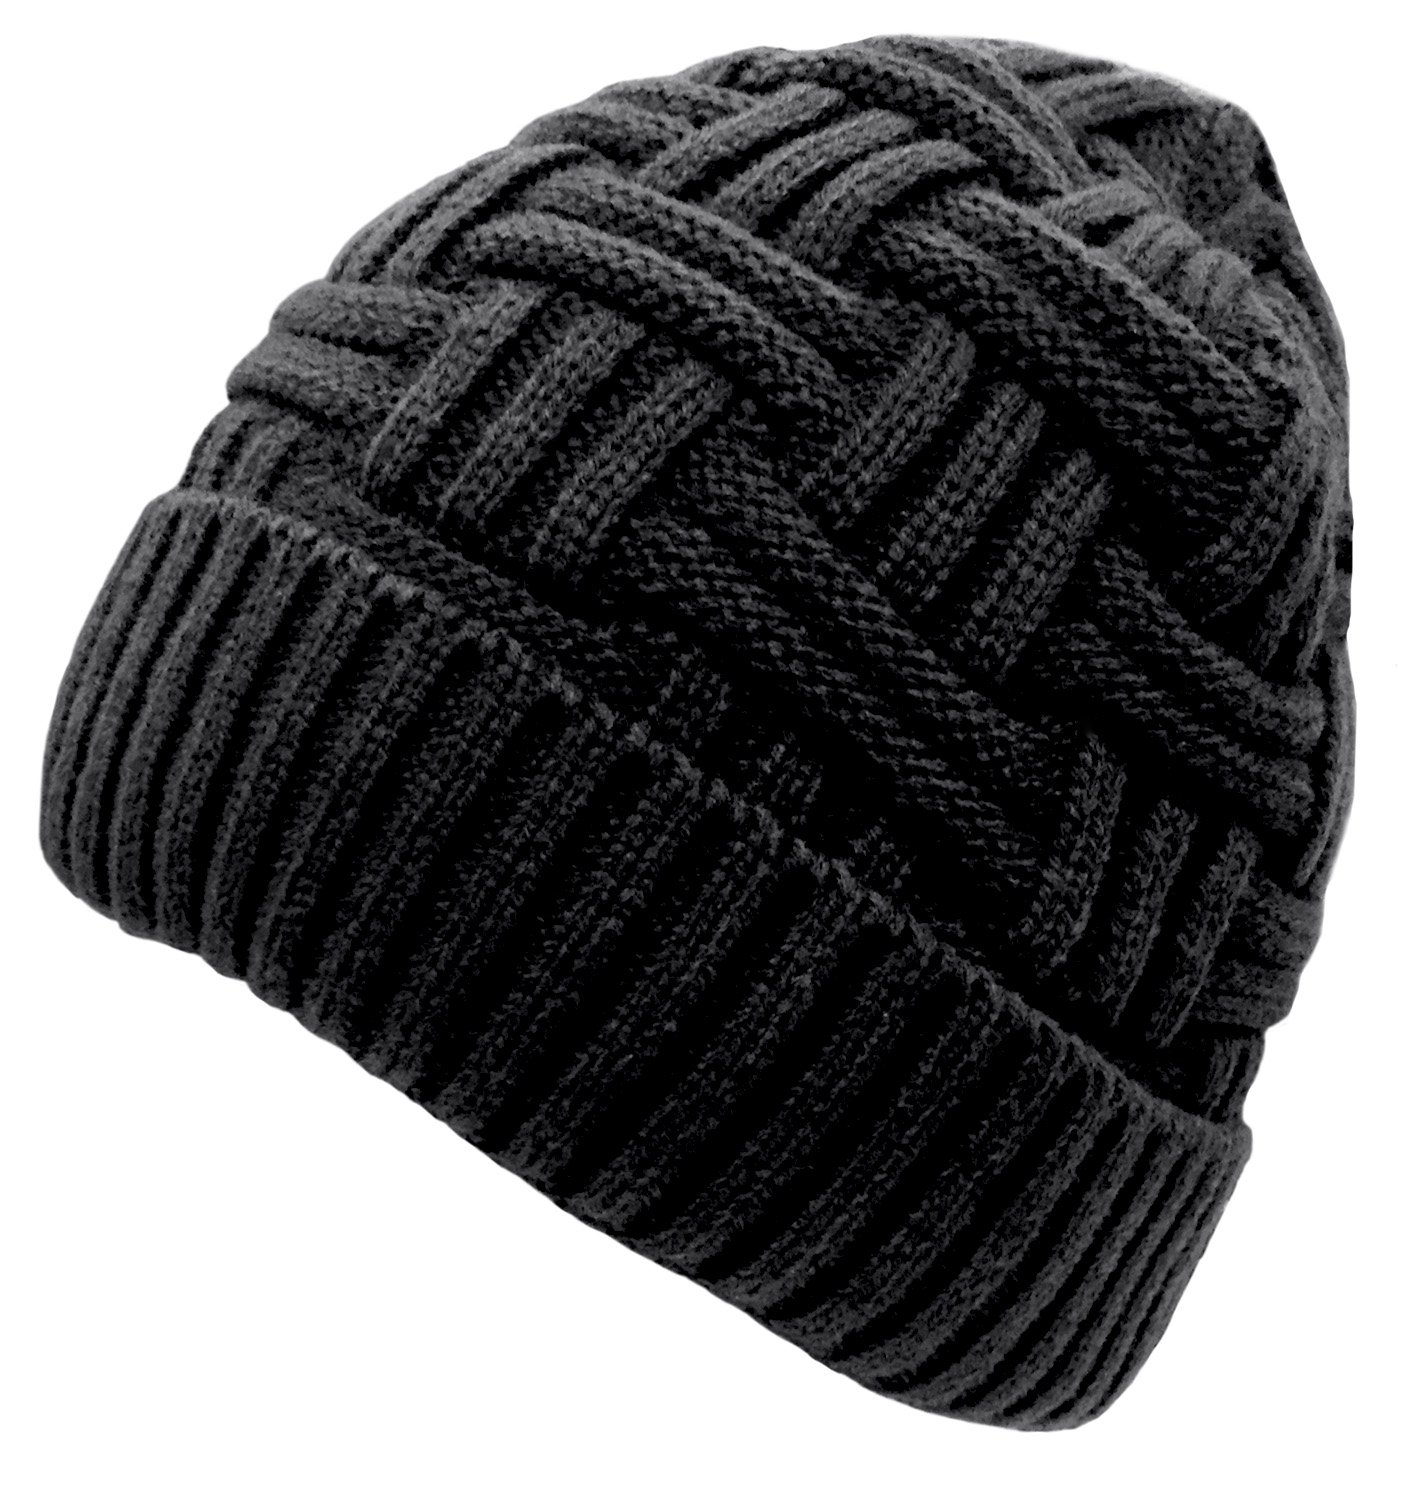 Loritta Mens Winter Warm Knitting Hats Wool Baggy Slouchy Beanie Hat Skull  Cap product image 2ca5939ad5d6